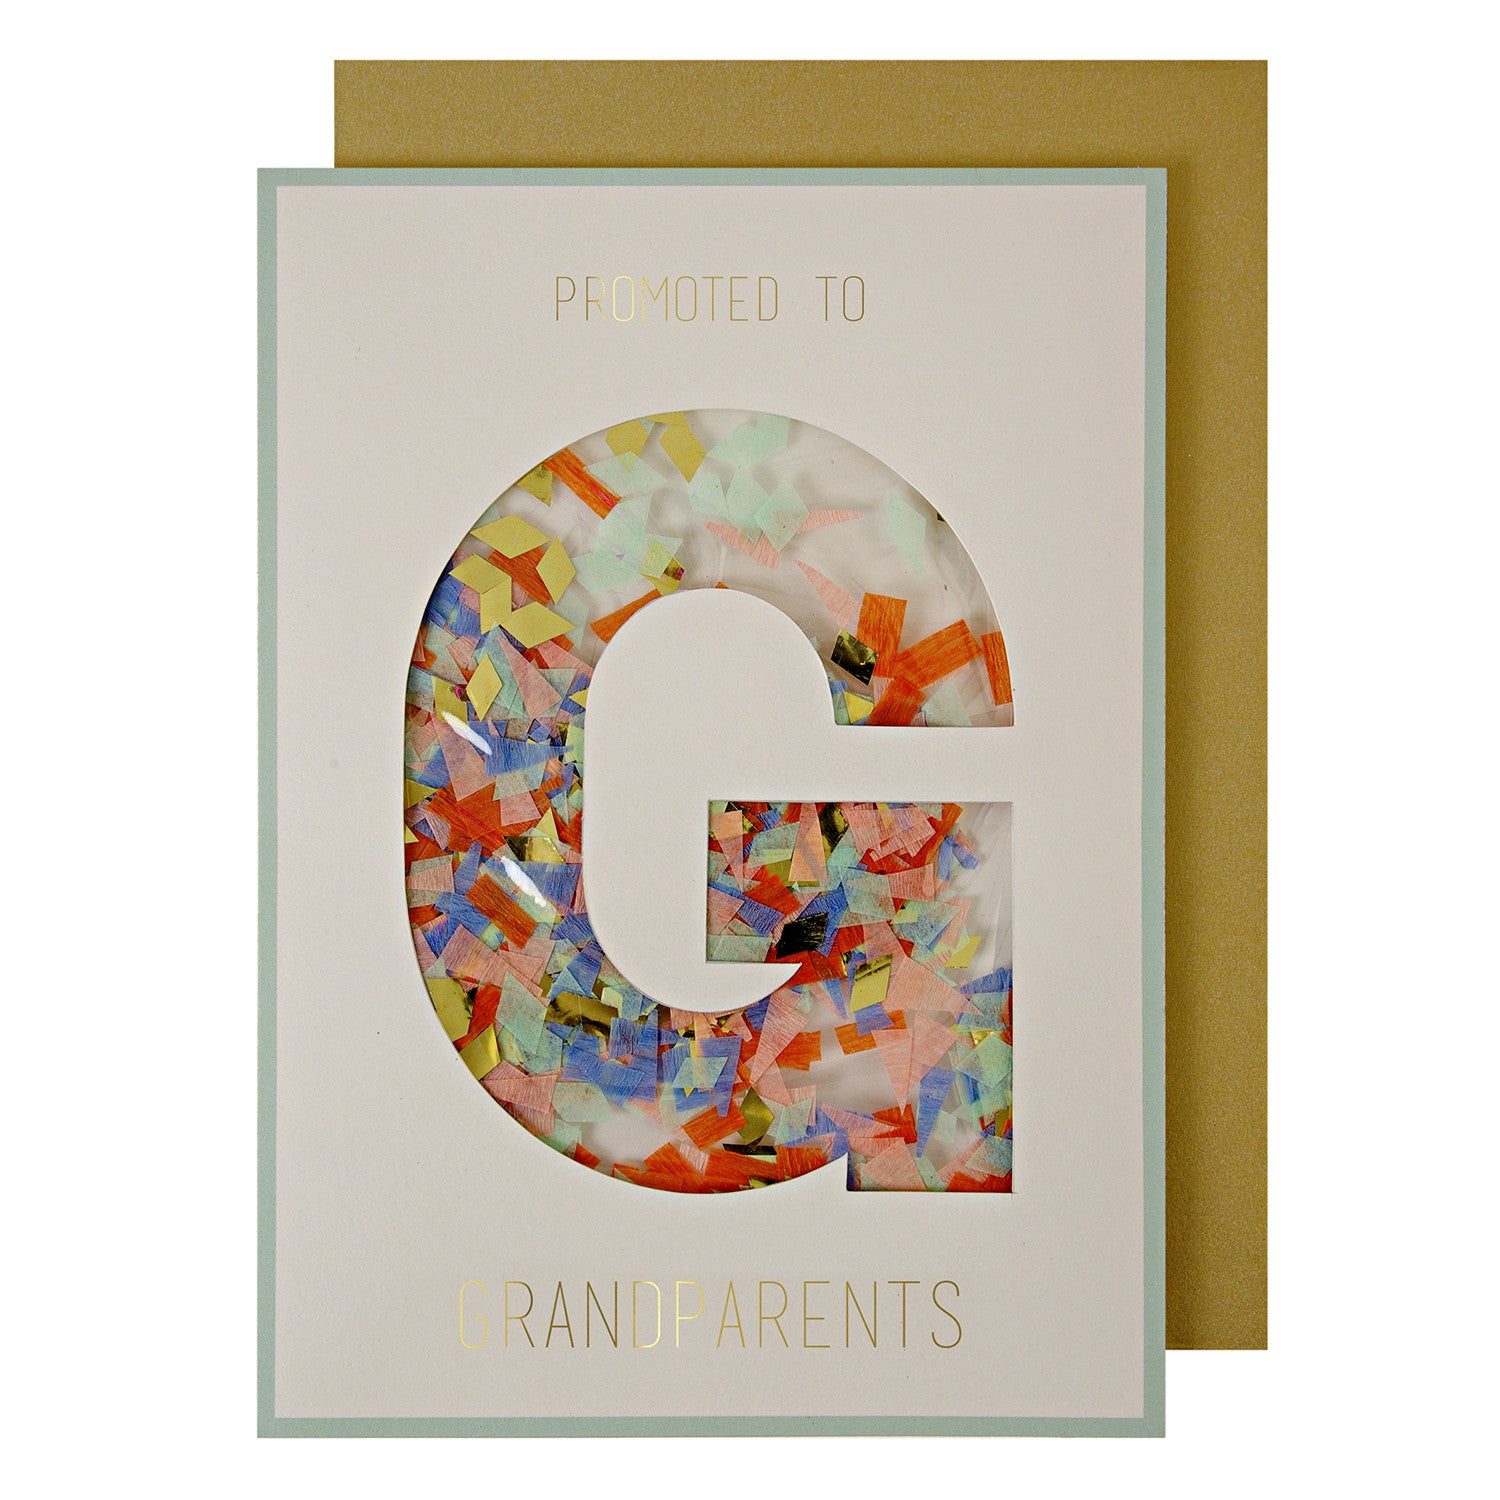 Promoted to Grandparents Greeting Card by Meri Meri - Little Citizens Boutique